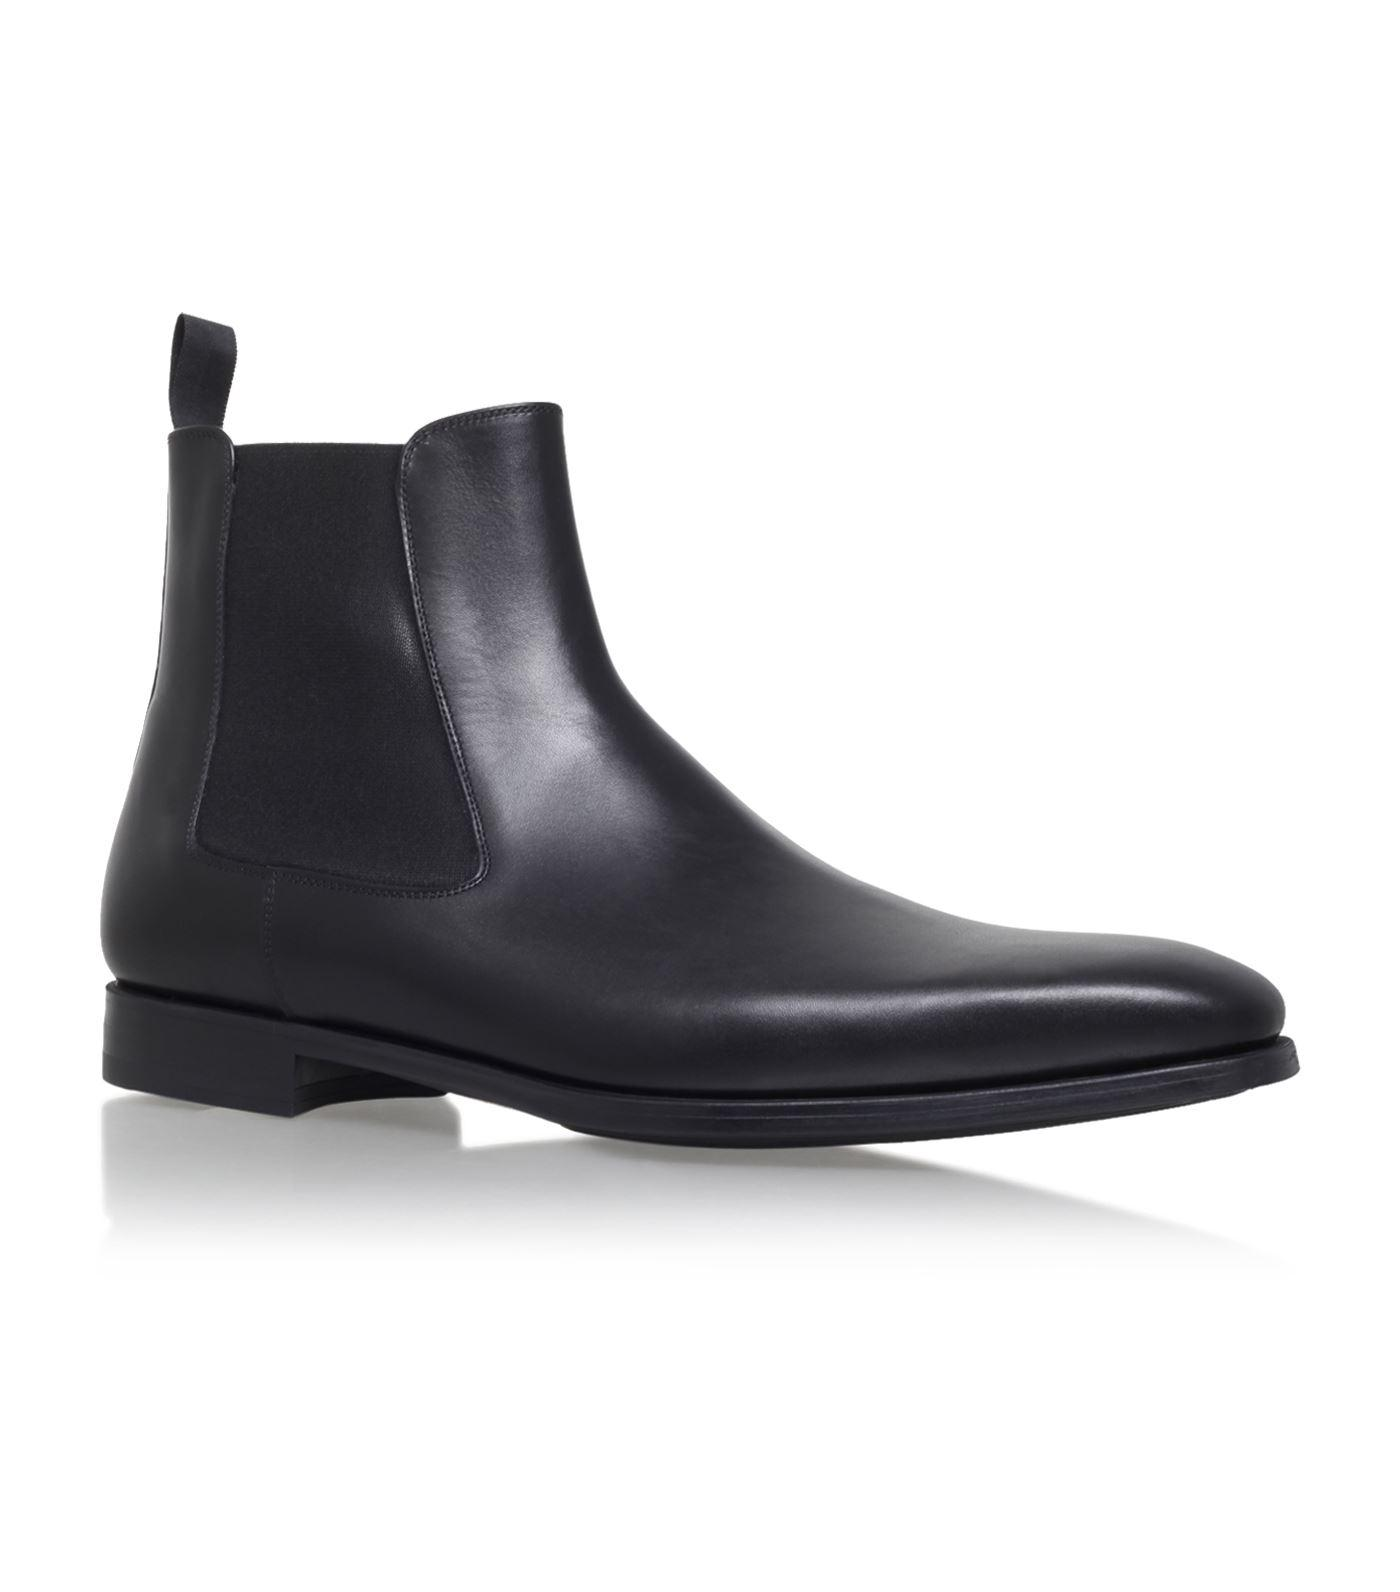 08ac0abbe23 Magnanni Mens Black Luxury Leather Chelsea Boots